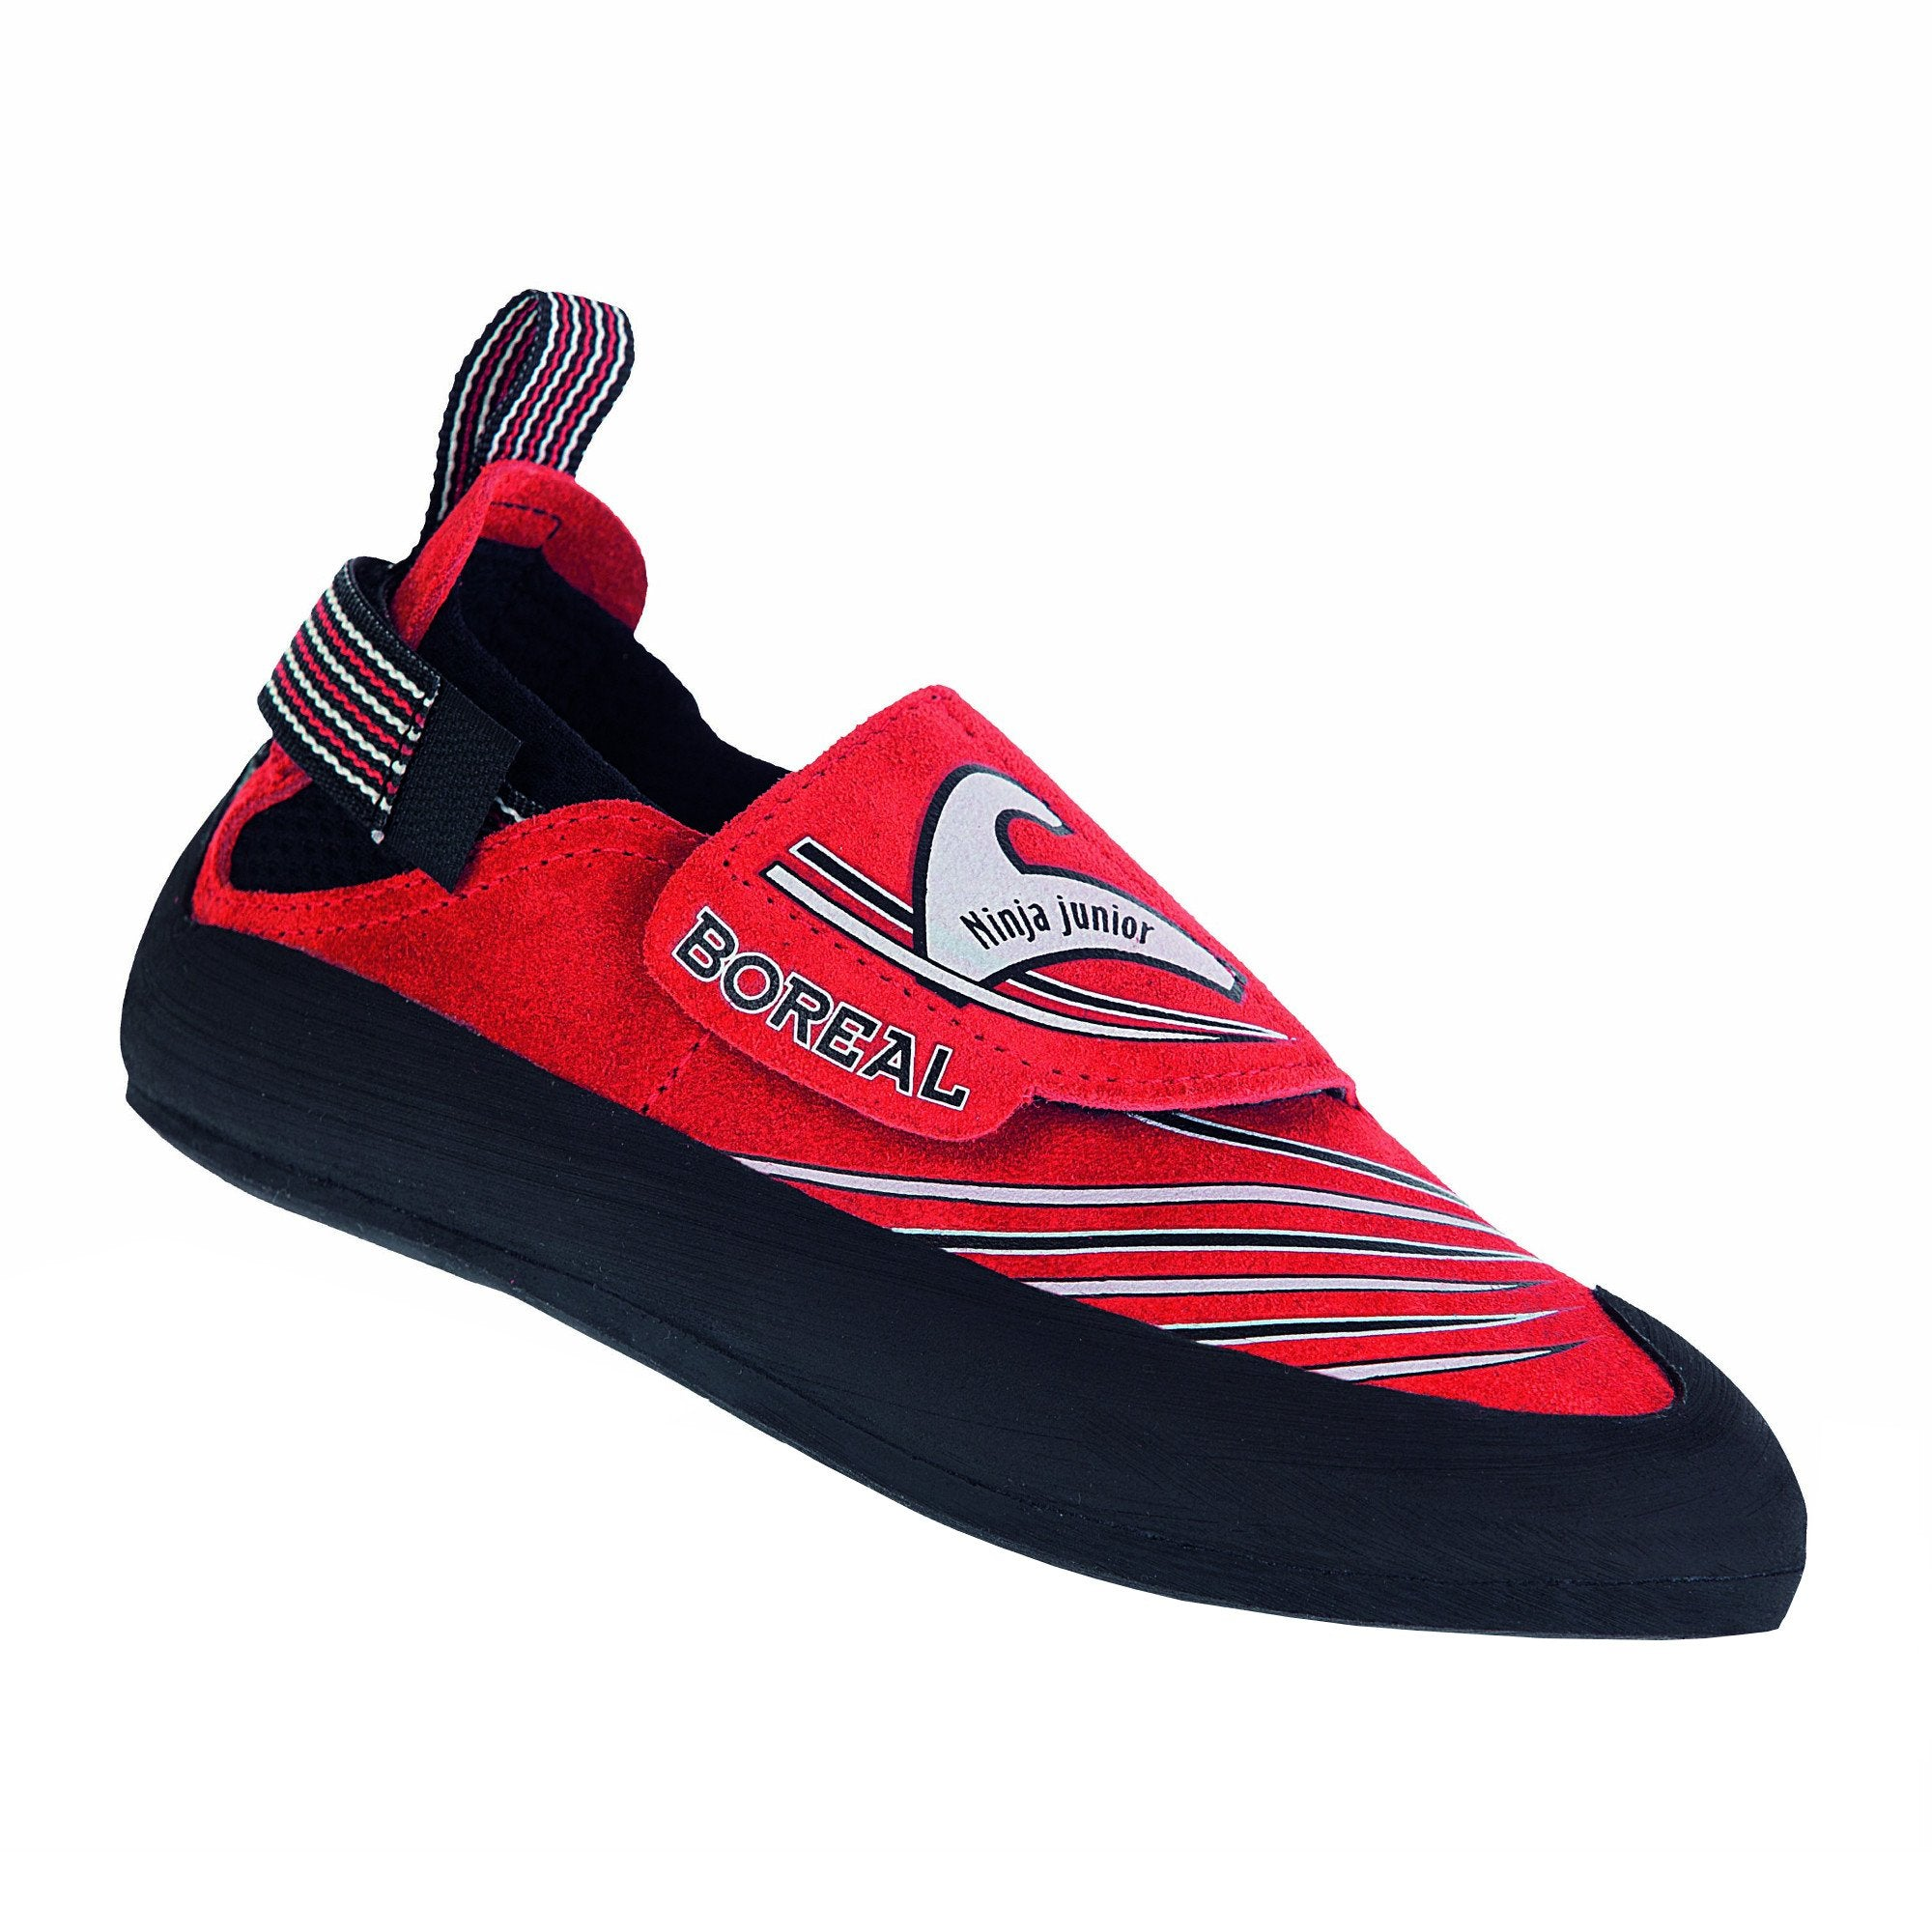 Boreal Ninja Junior kids climbing shoe, outer side view in red colour